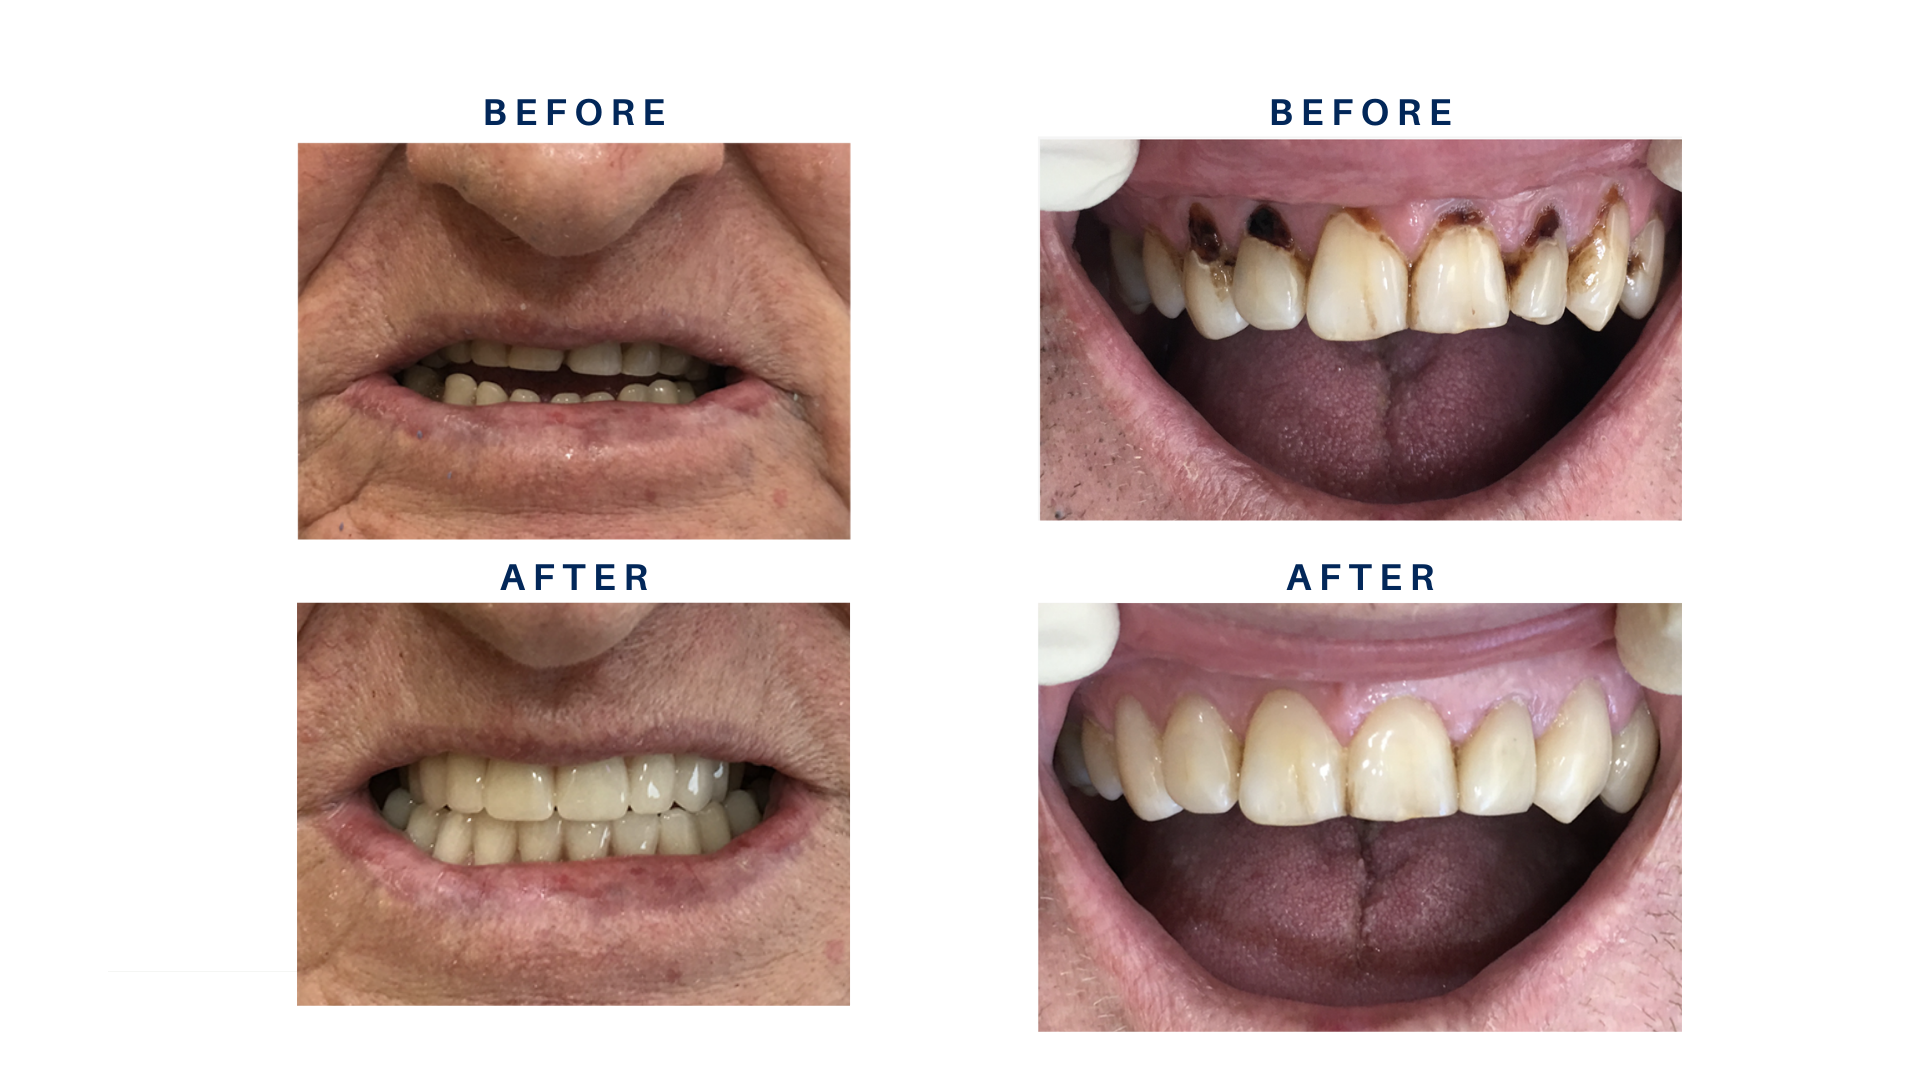 Before and After Pictures dental work done by Dr Mahi